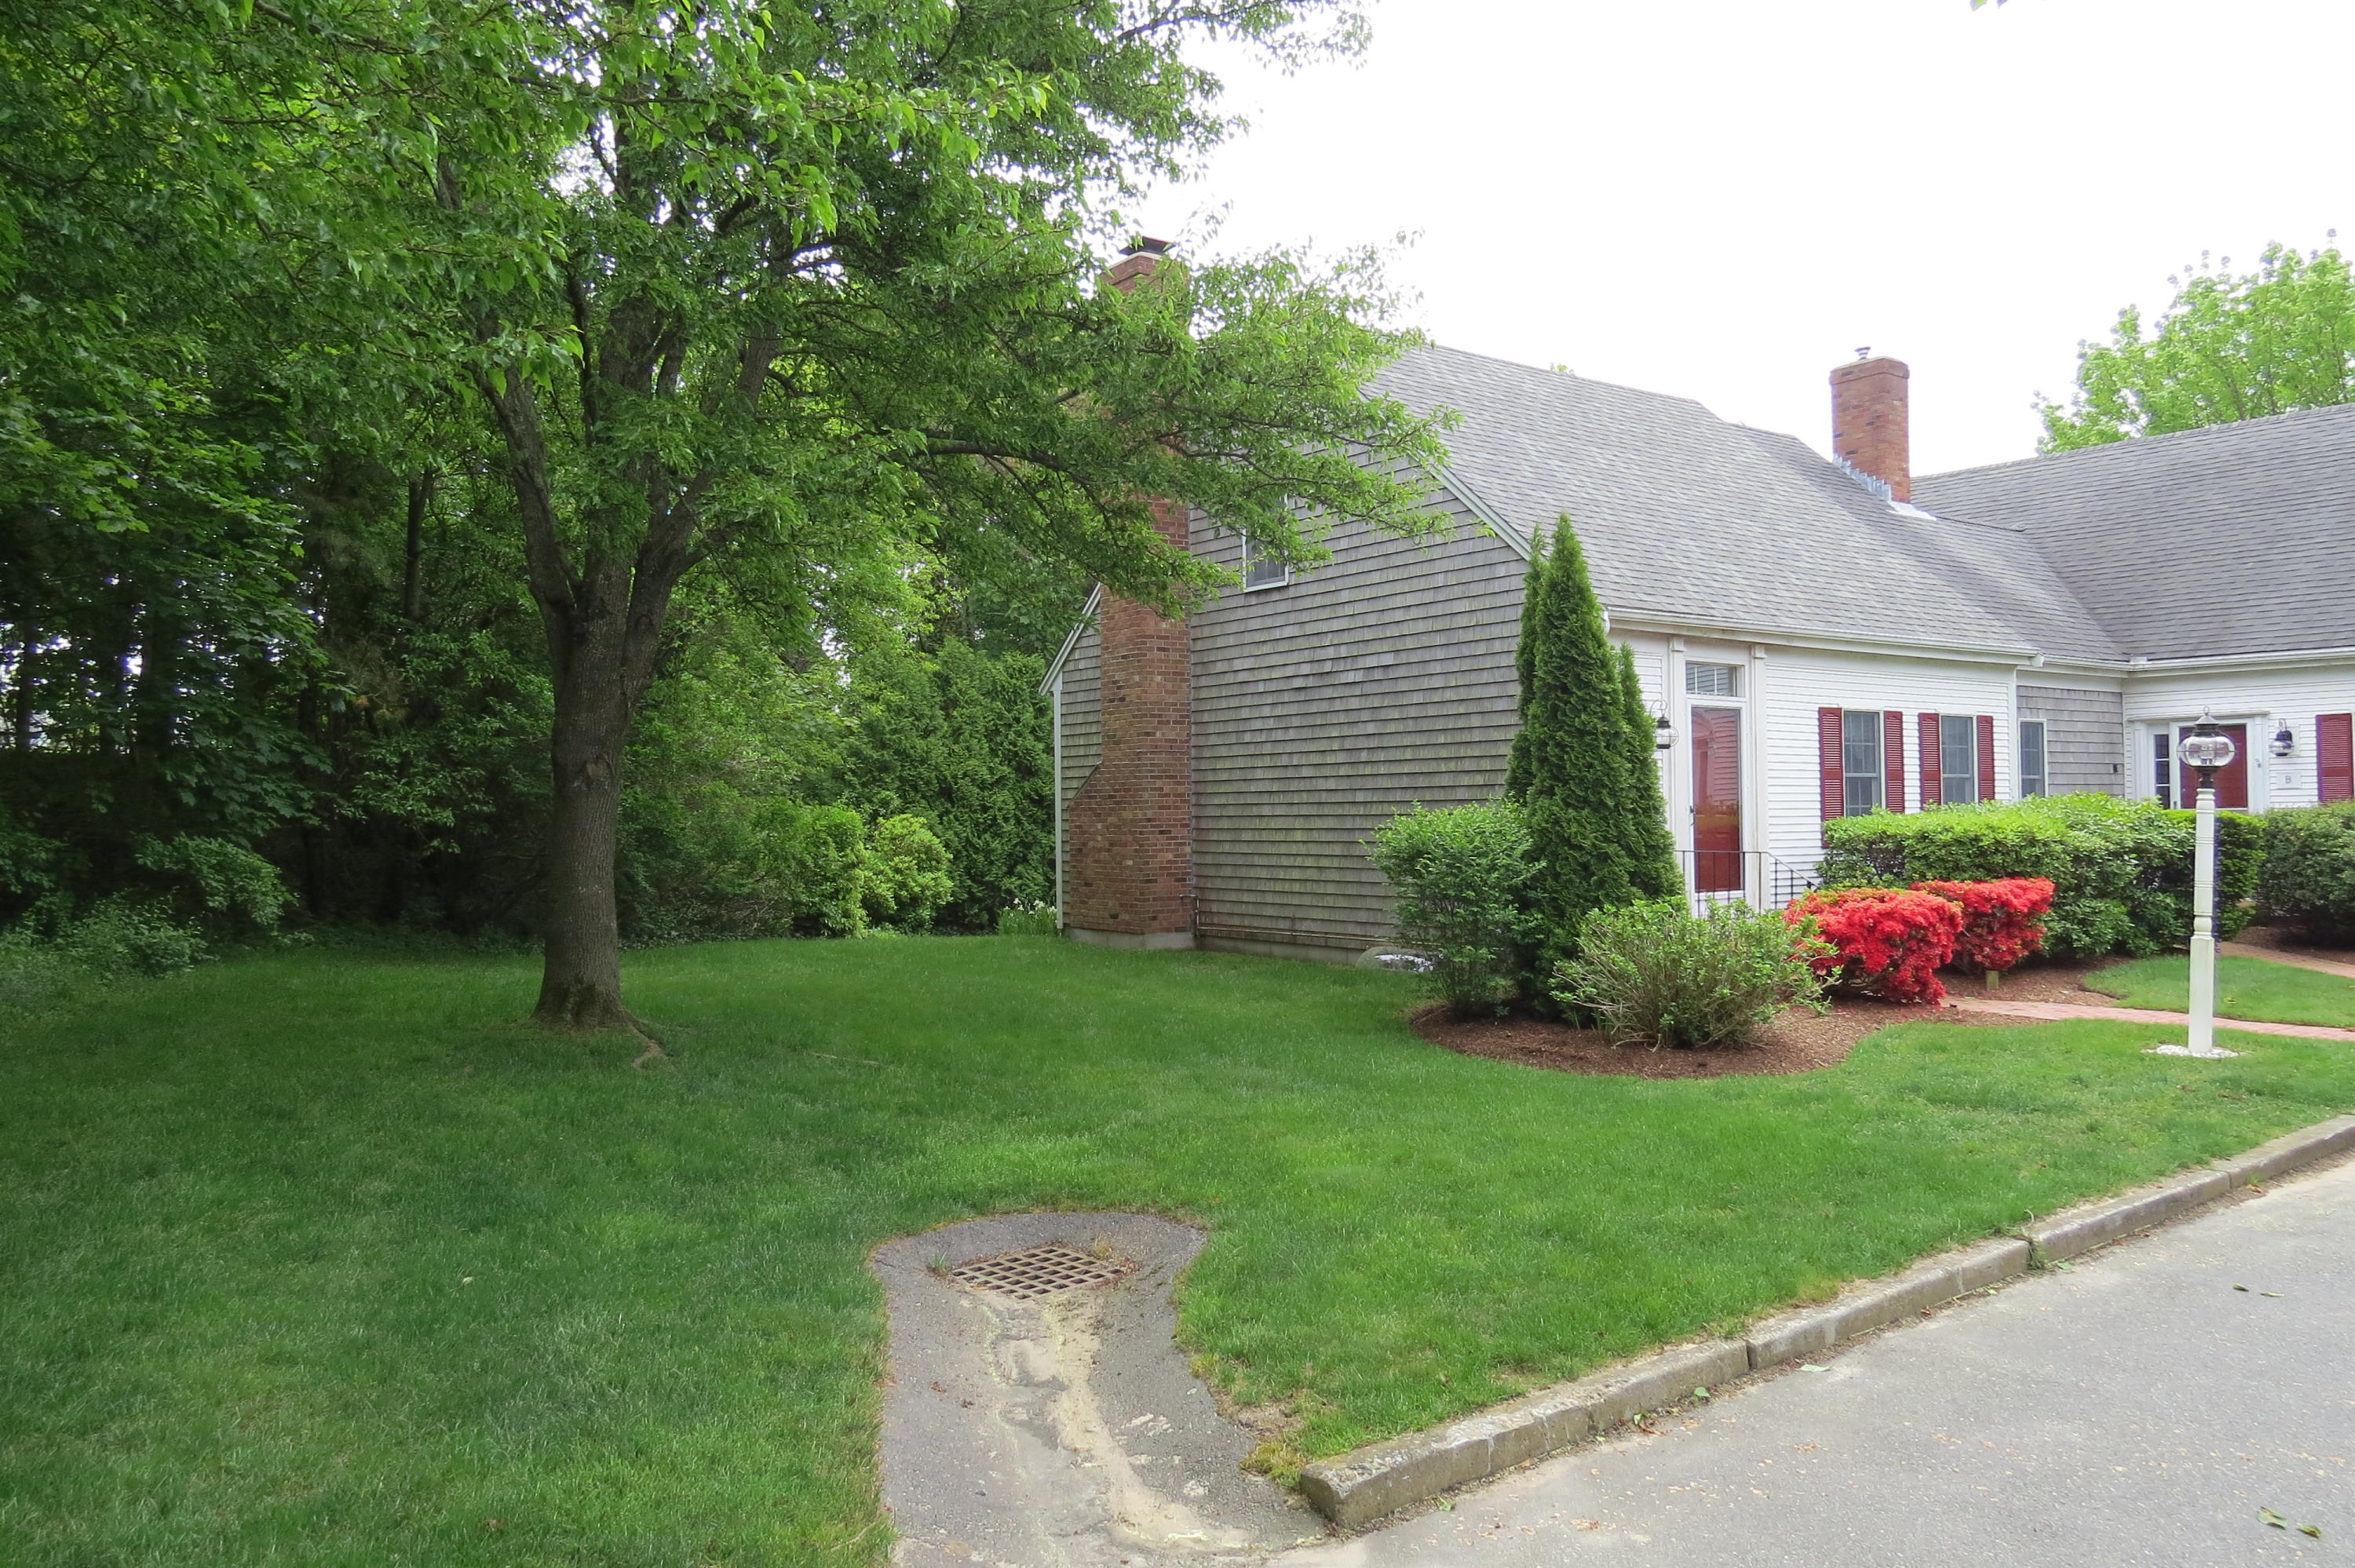 367a-rd-orleans-road-north-chatham-ma-02650